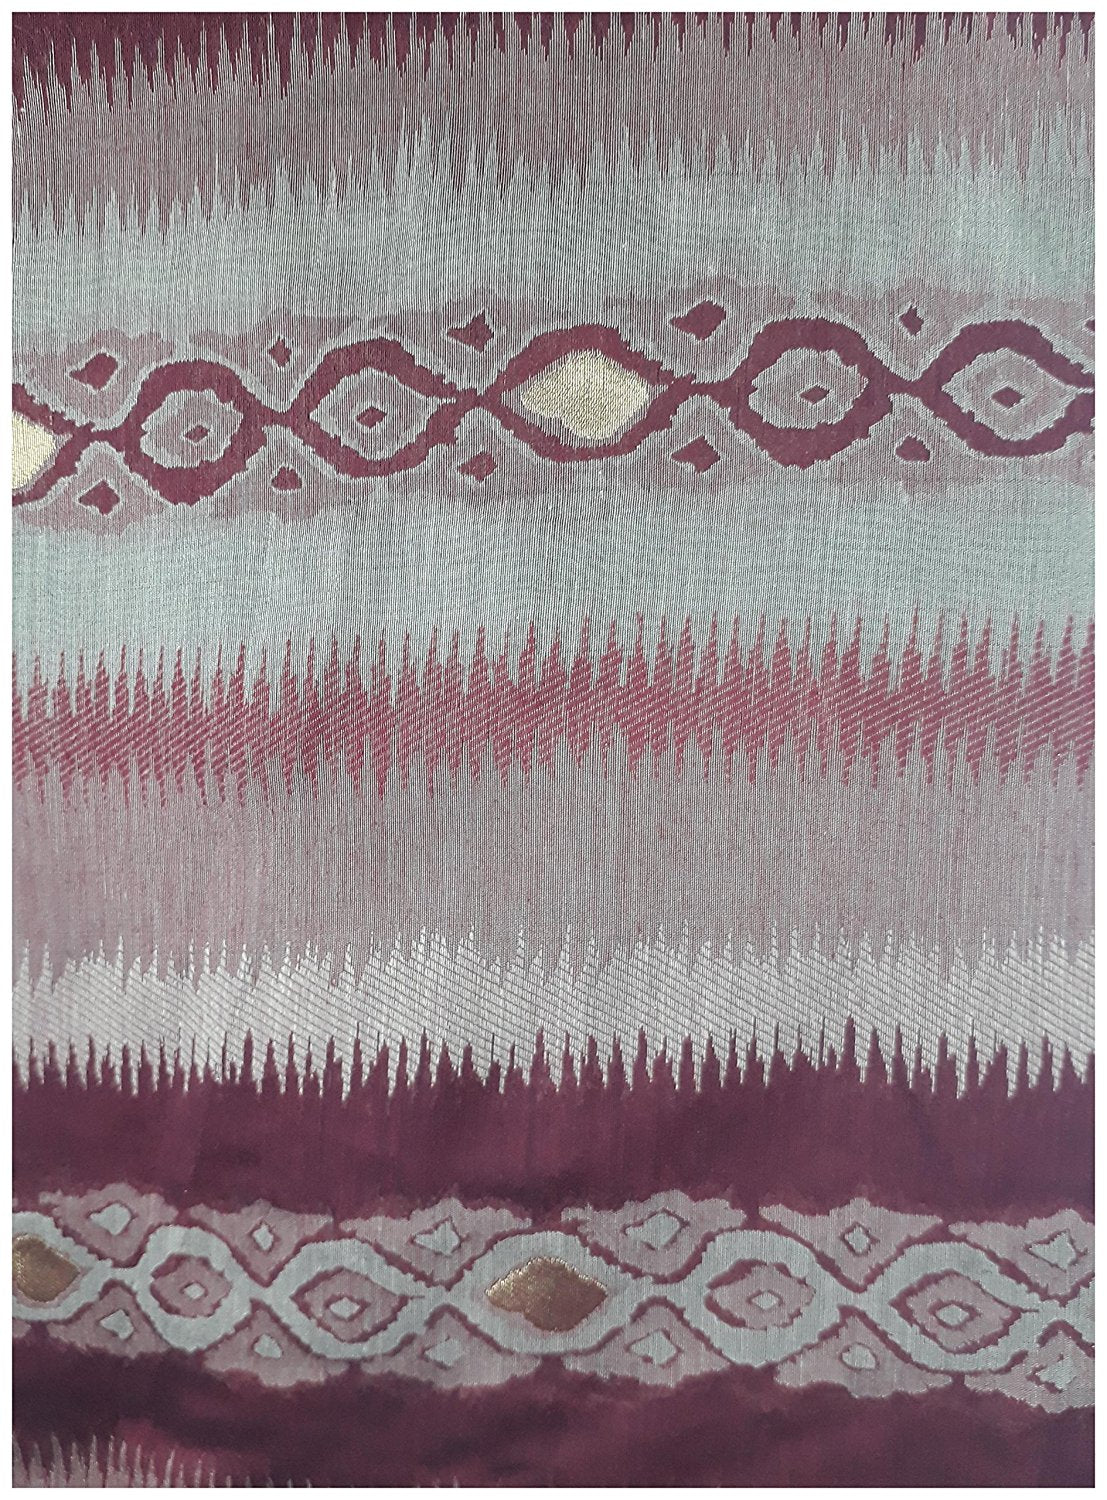 embroidery dress material materials for embroidery Cotton Maroon, Beige, Gold 51 inches Wide 1738